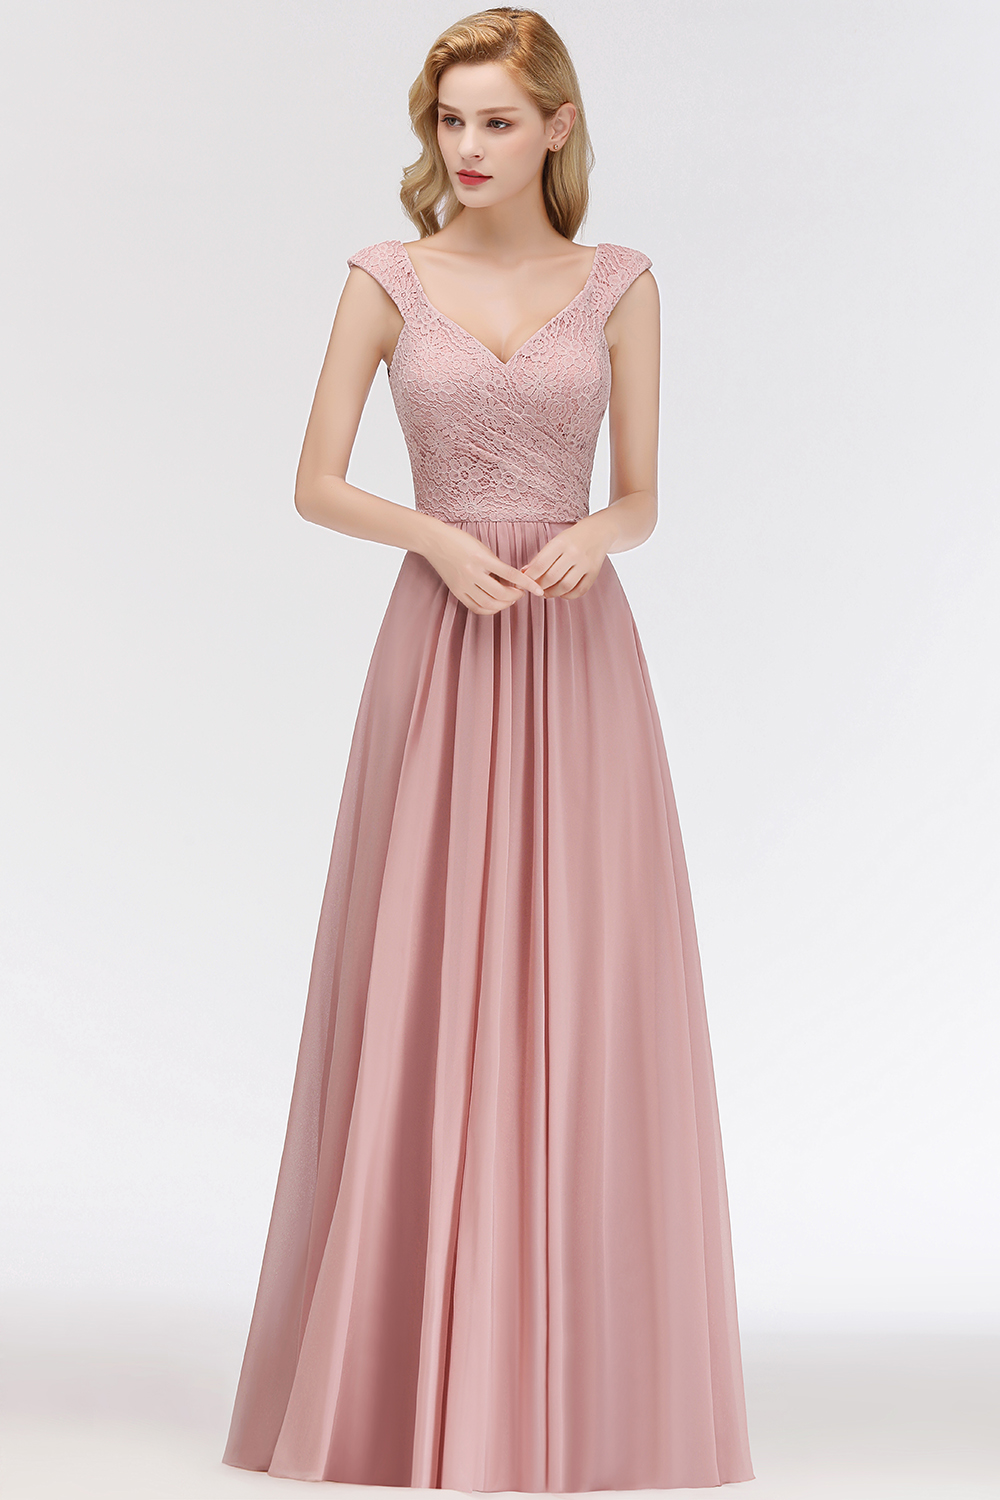 robe demoiselle d'honneur rose queen anne